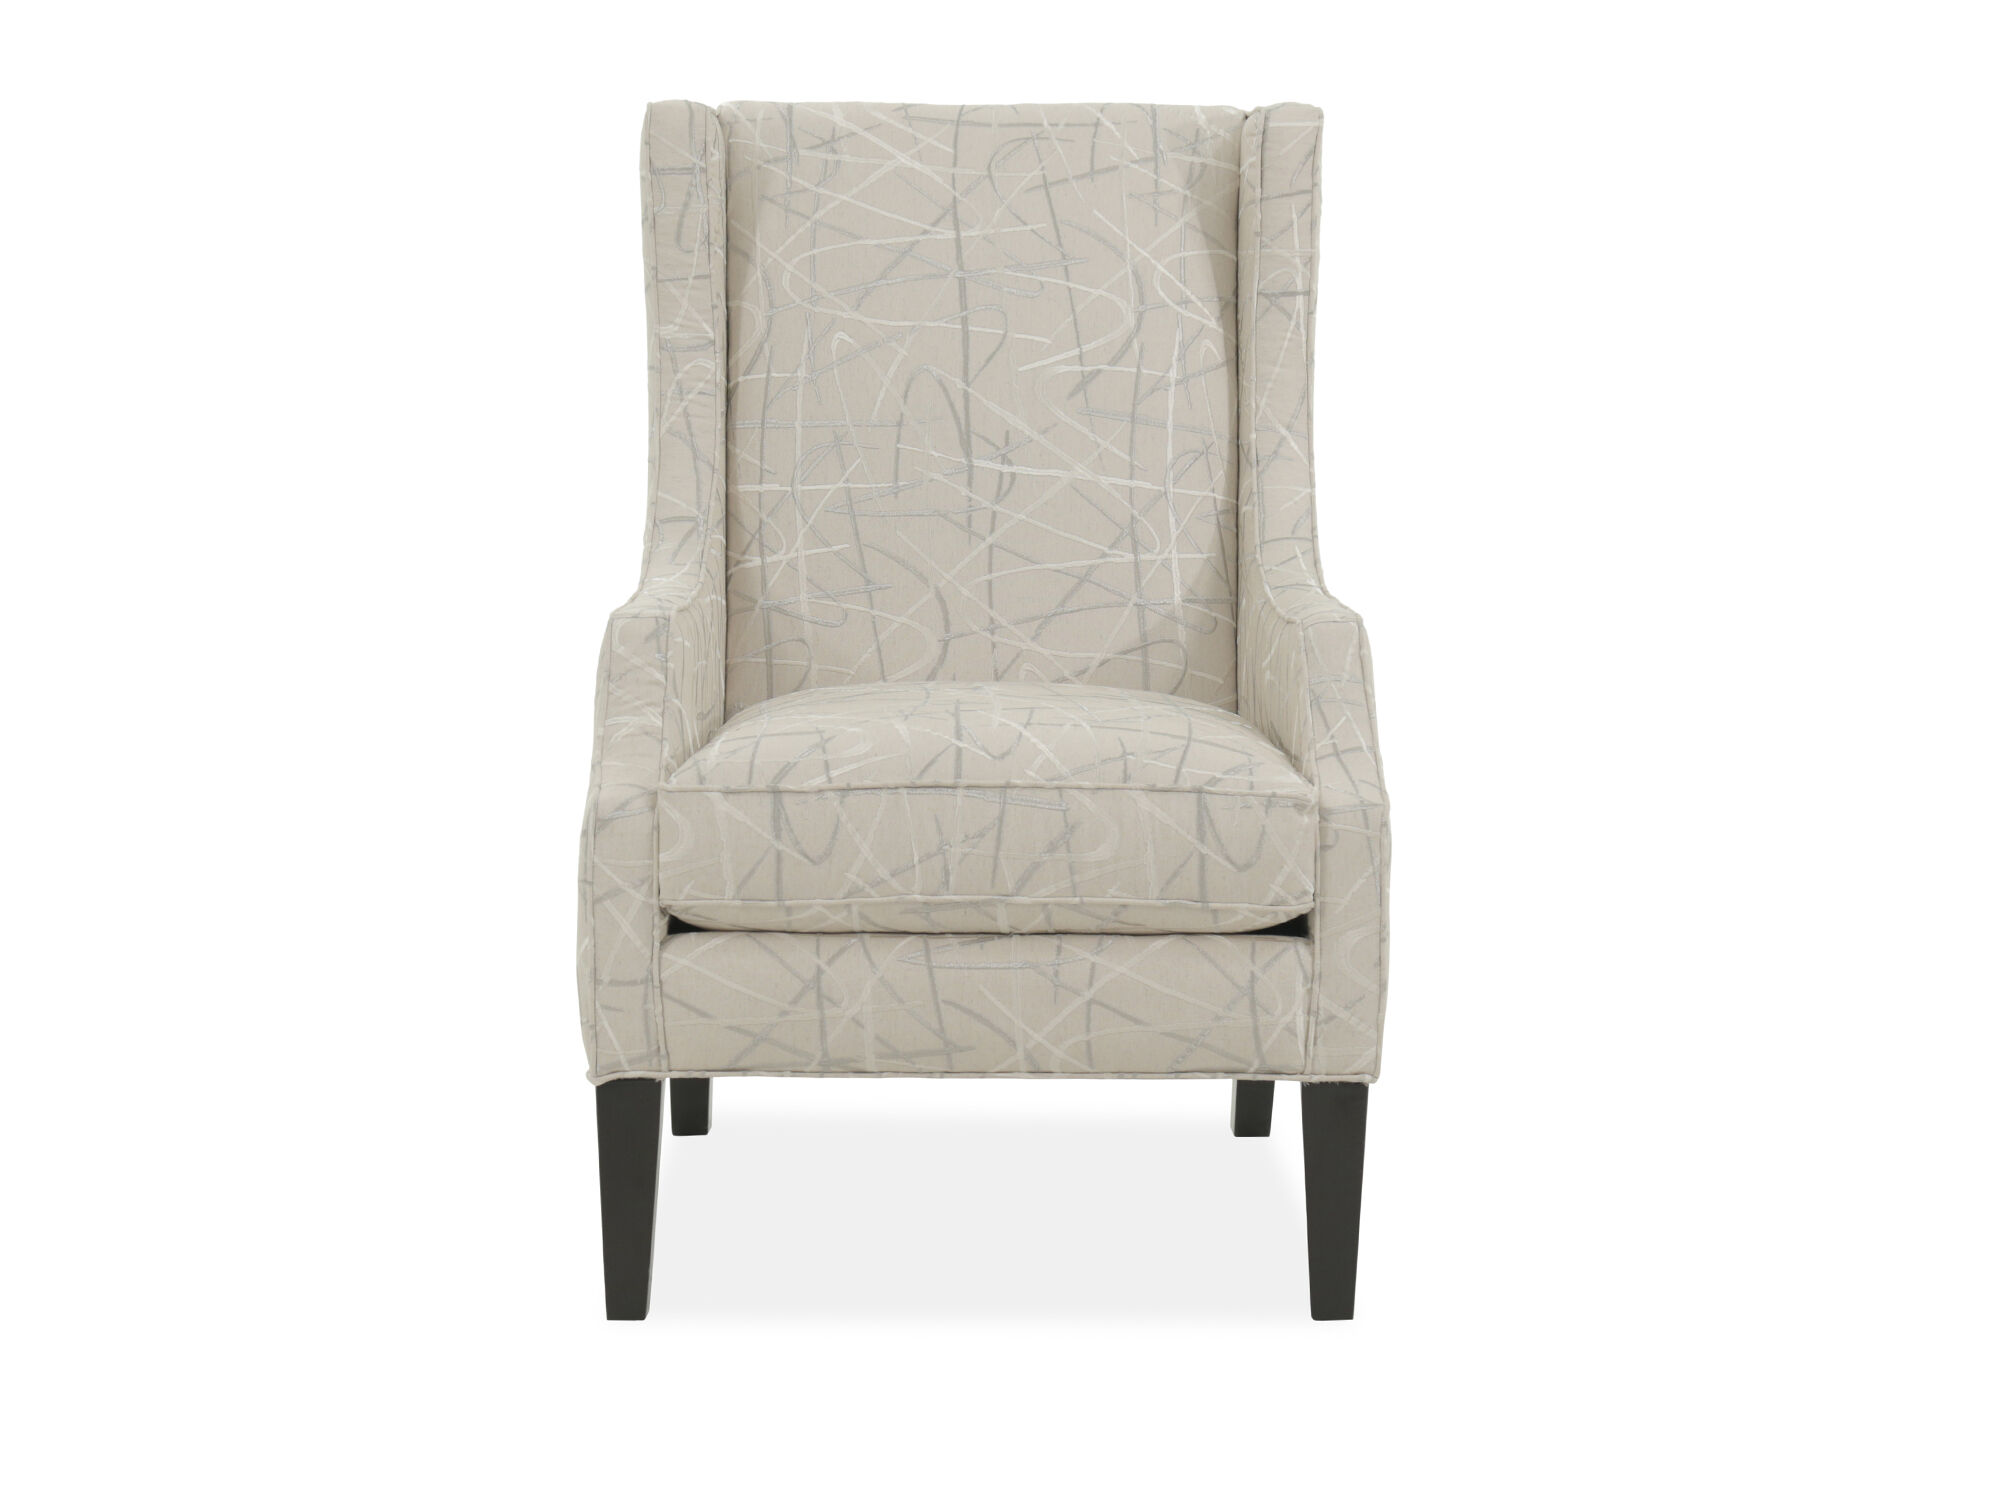 Patterned Chairs Geometric Patterned Casual 29 Quot Wing Chair In Beige